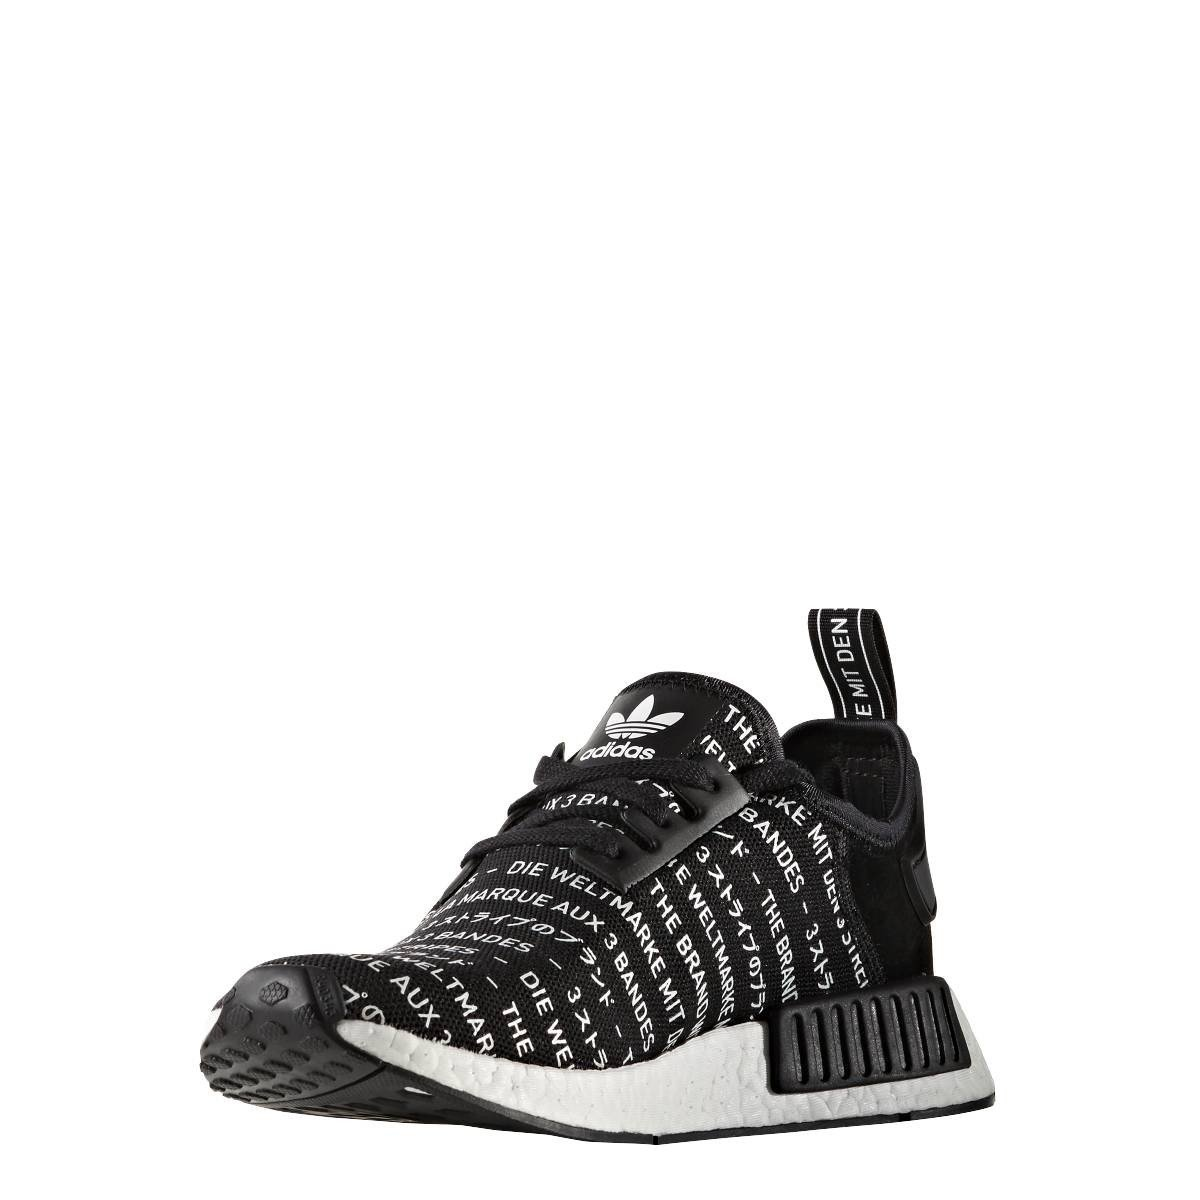 Adidas NMD R1 The Brand With The Three Stripes Blackout Black White  Trainer  Amazon.co.uk  Shoes   Bags b904b3b8cfc6